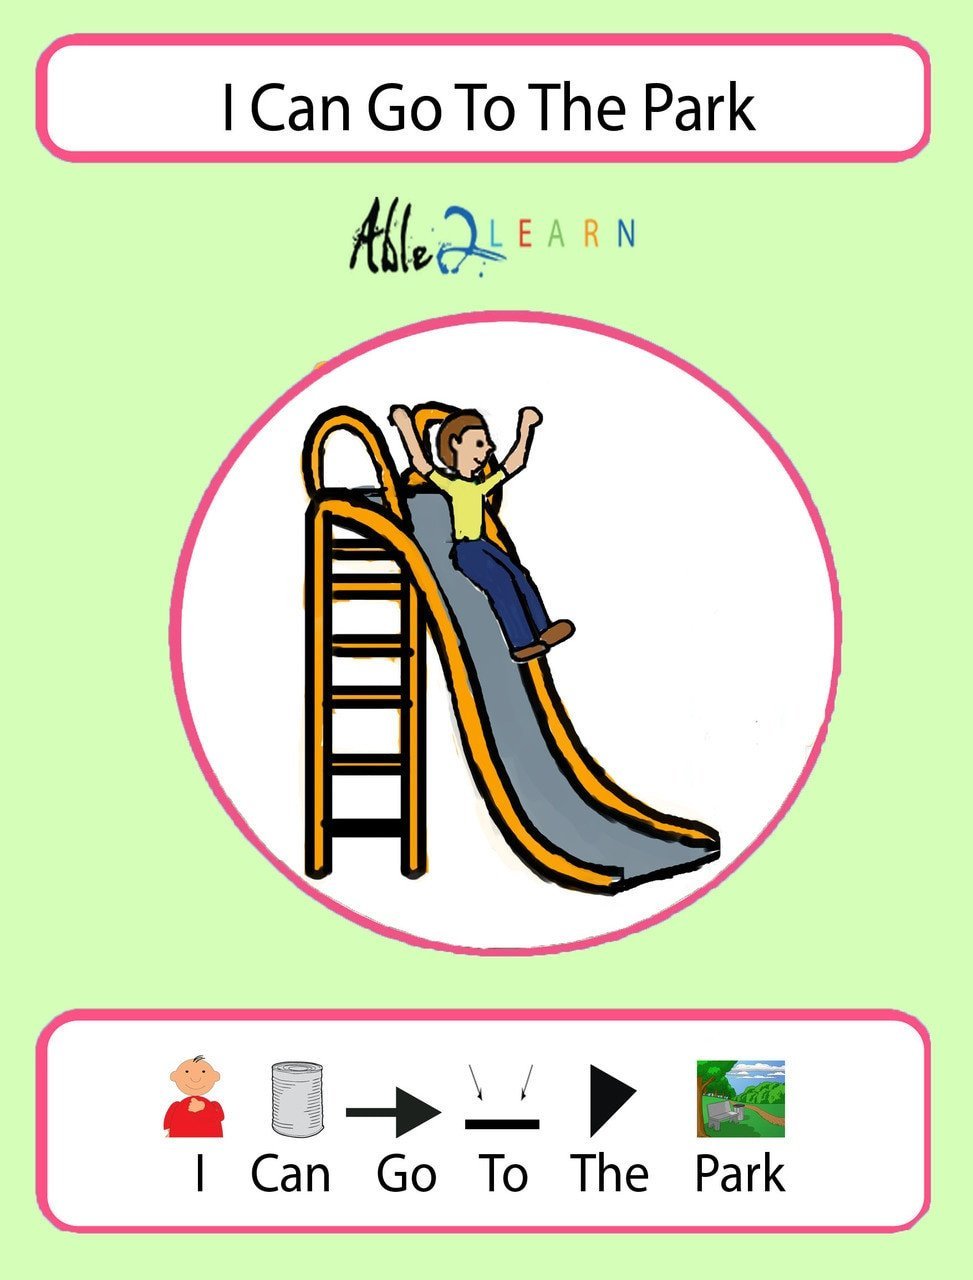 free autism education autism park i can goto park social story able2learn autismwisdom autism school free aba resources free printable worksheets 1